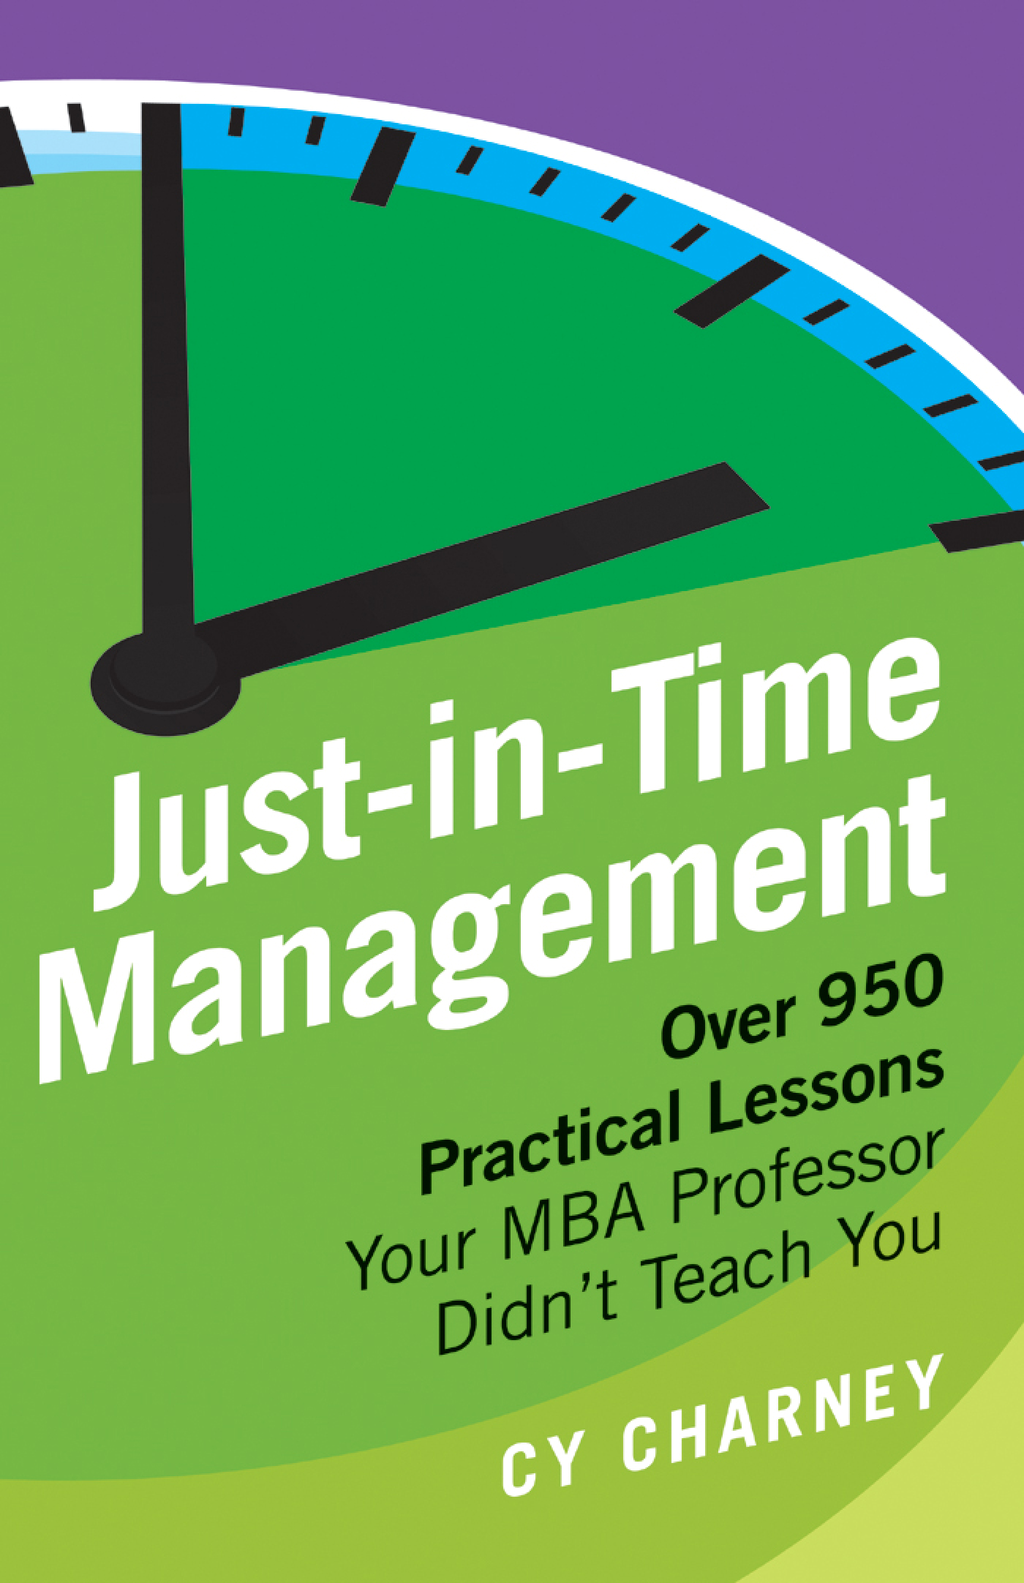 Just-in-Time Management: Over 950 Practical Lessons Your MBA Professor Didn't Teach You By: Cy Charney